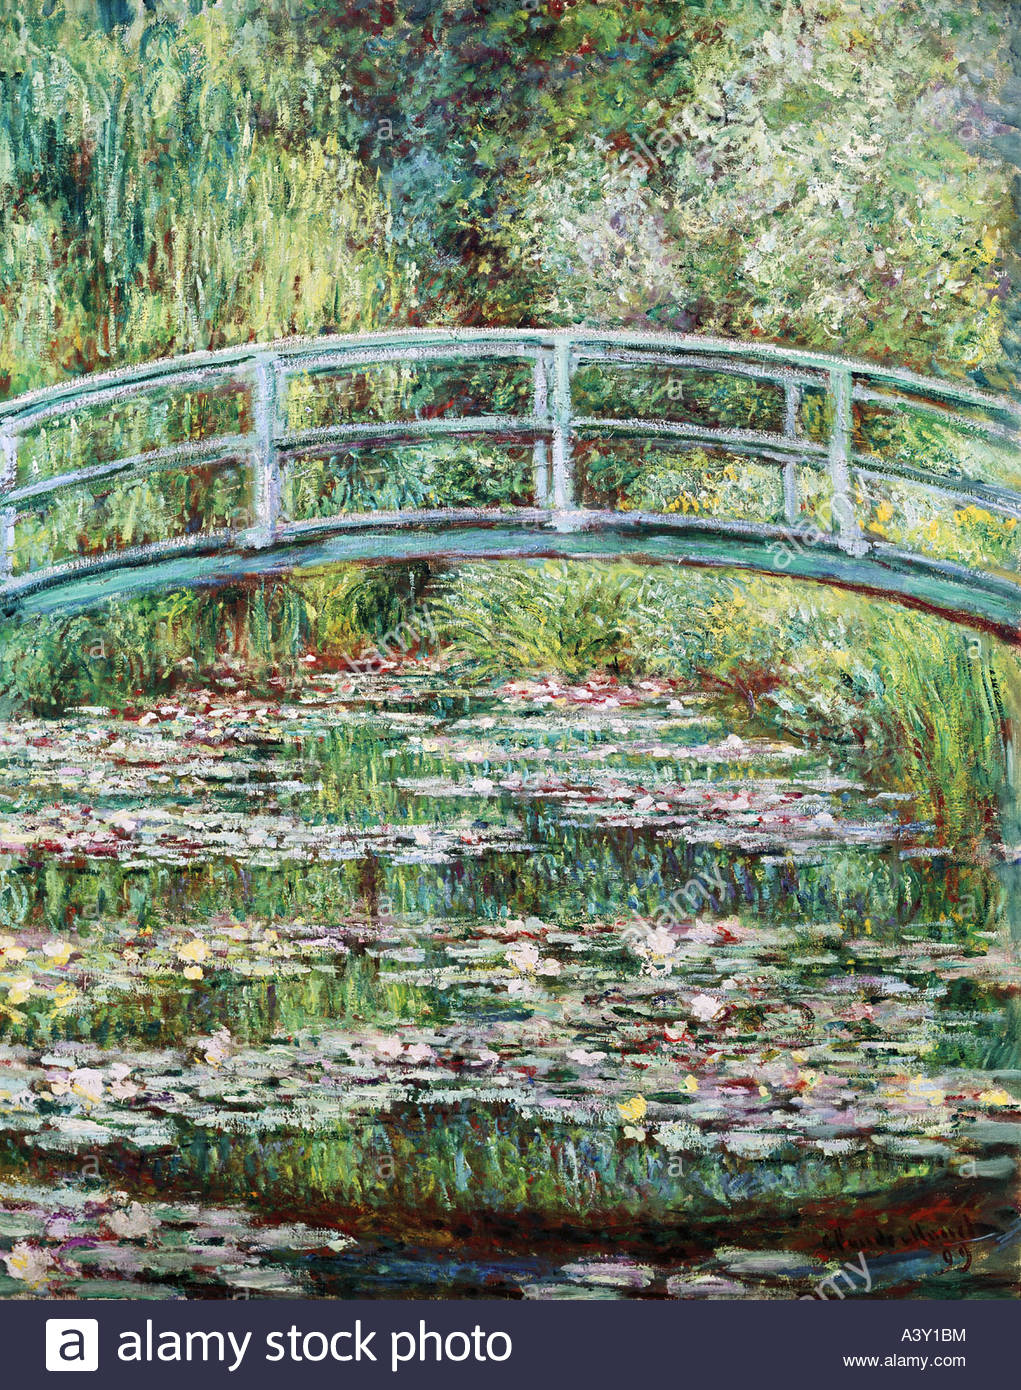 'fine arts, Monet, Claude, (1840 - 1926), painting, 'Pont Japonais a Giverny', ('Japanese bridge - Stock Image